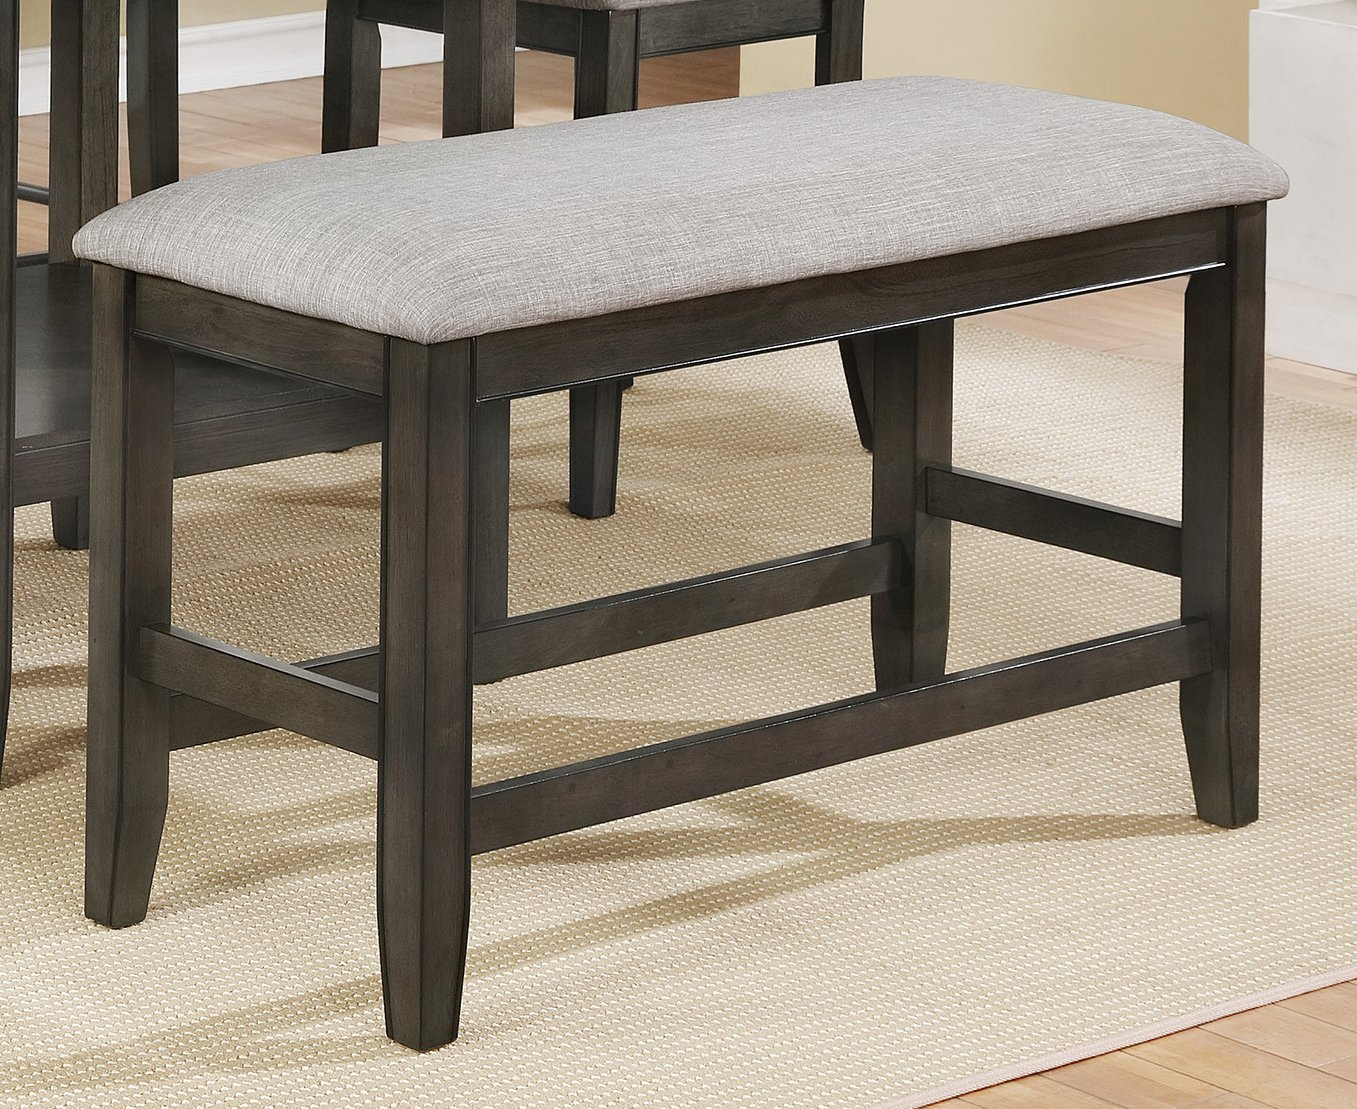 American Furniture Classics 2727B Dining Bench, Gray